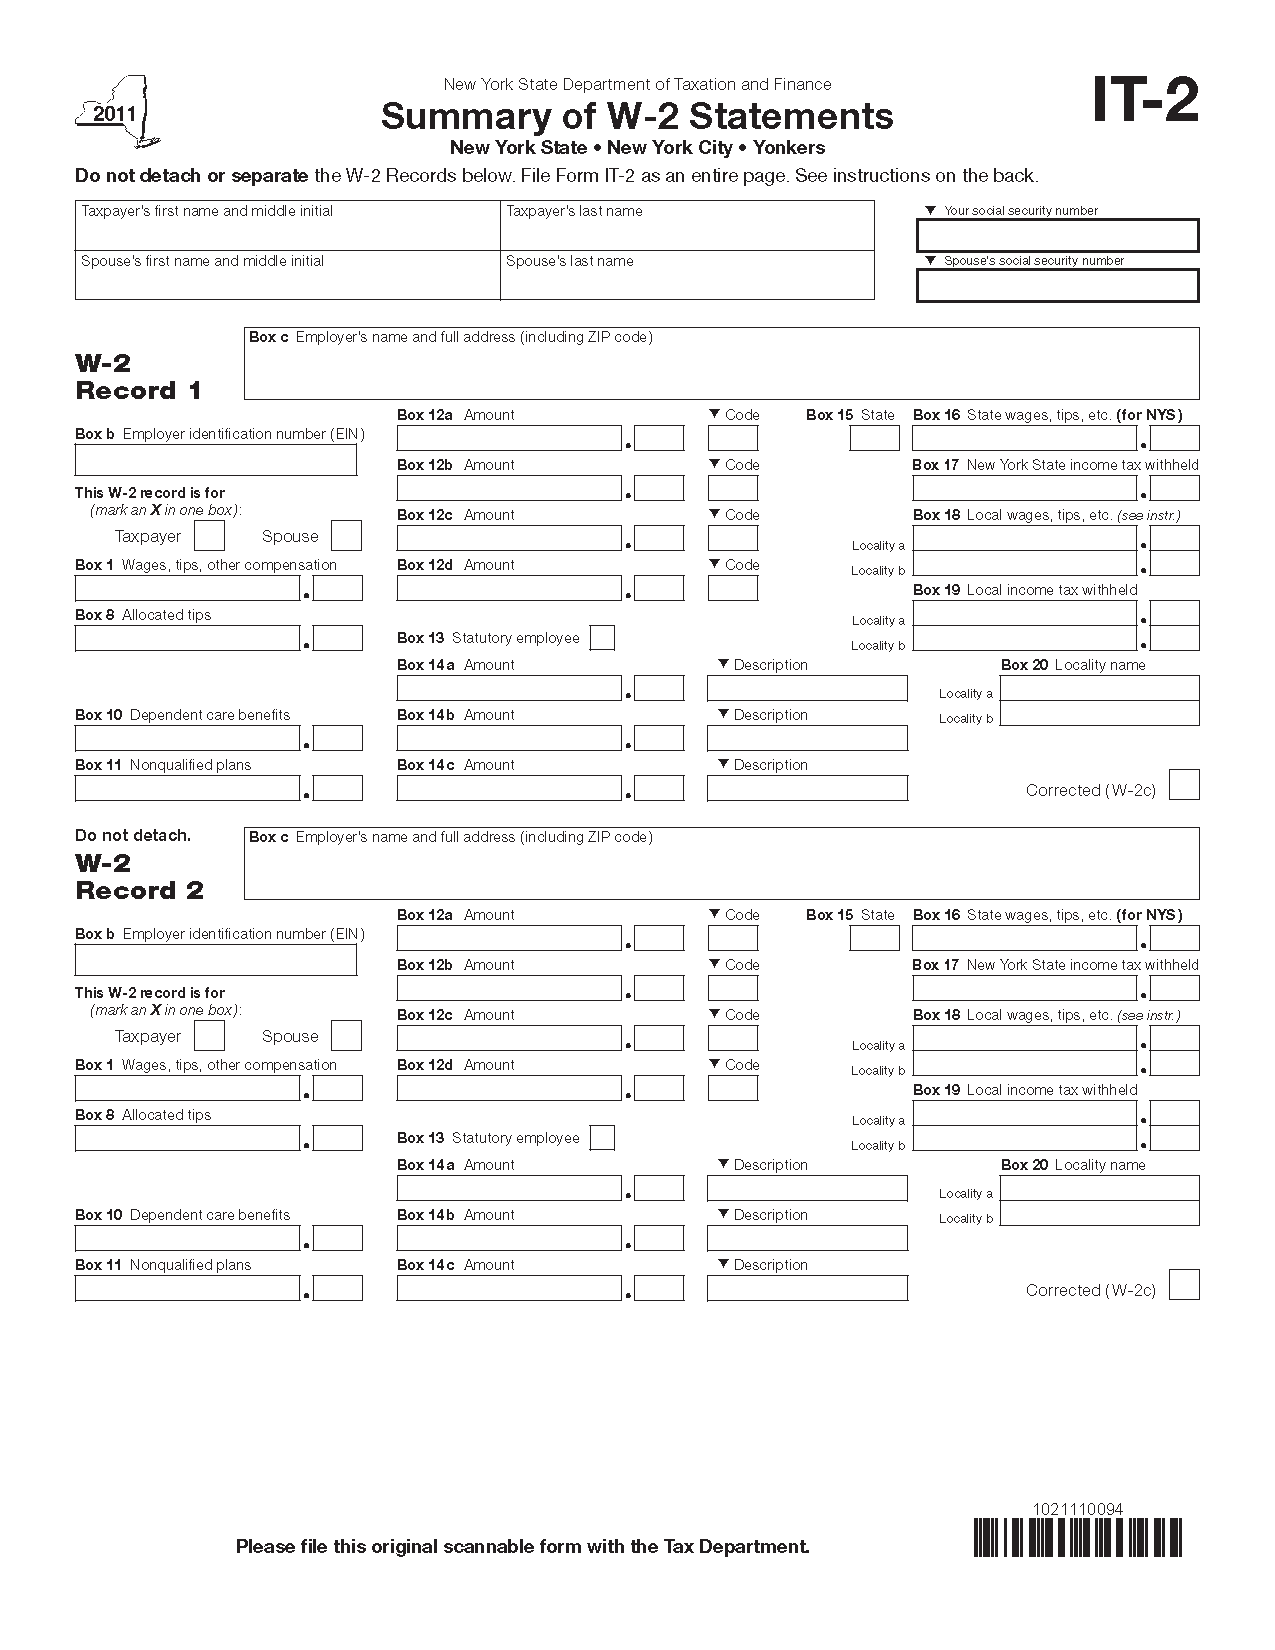 Form it 2 fill in save summary of w 2 statements view all 2011 ny new york tax forms falaconquin